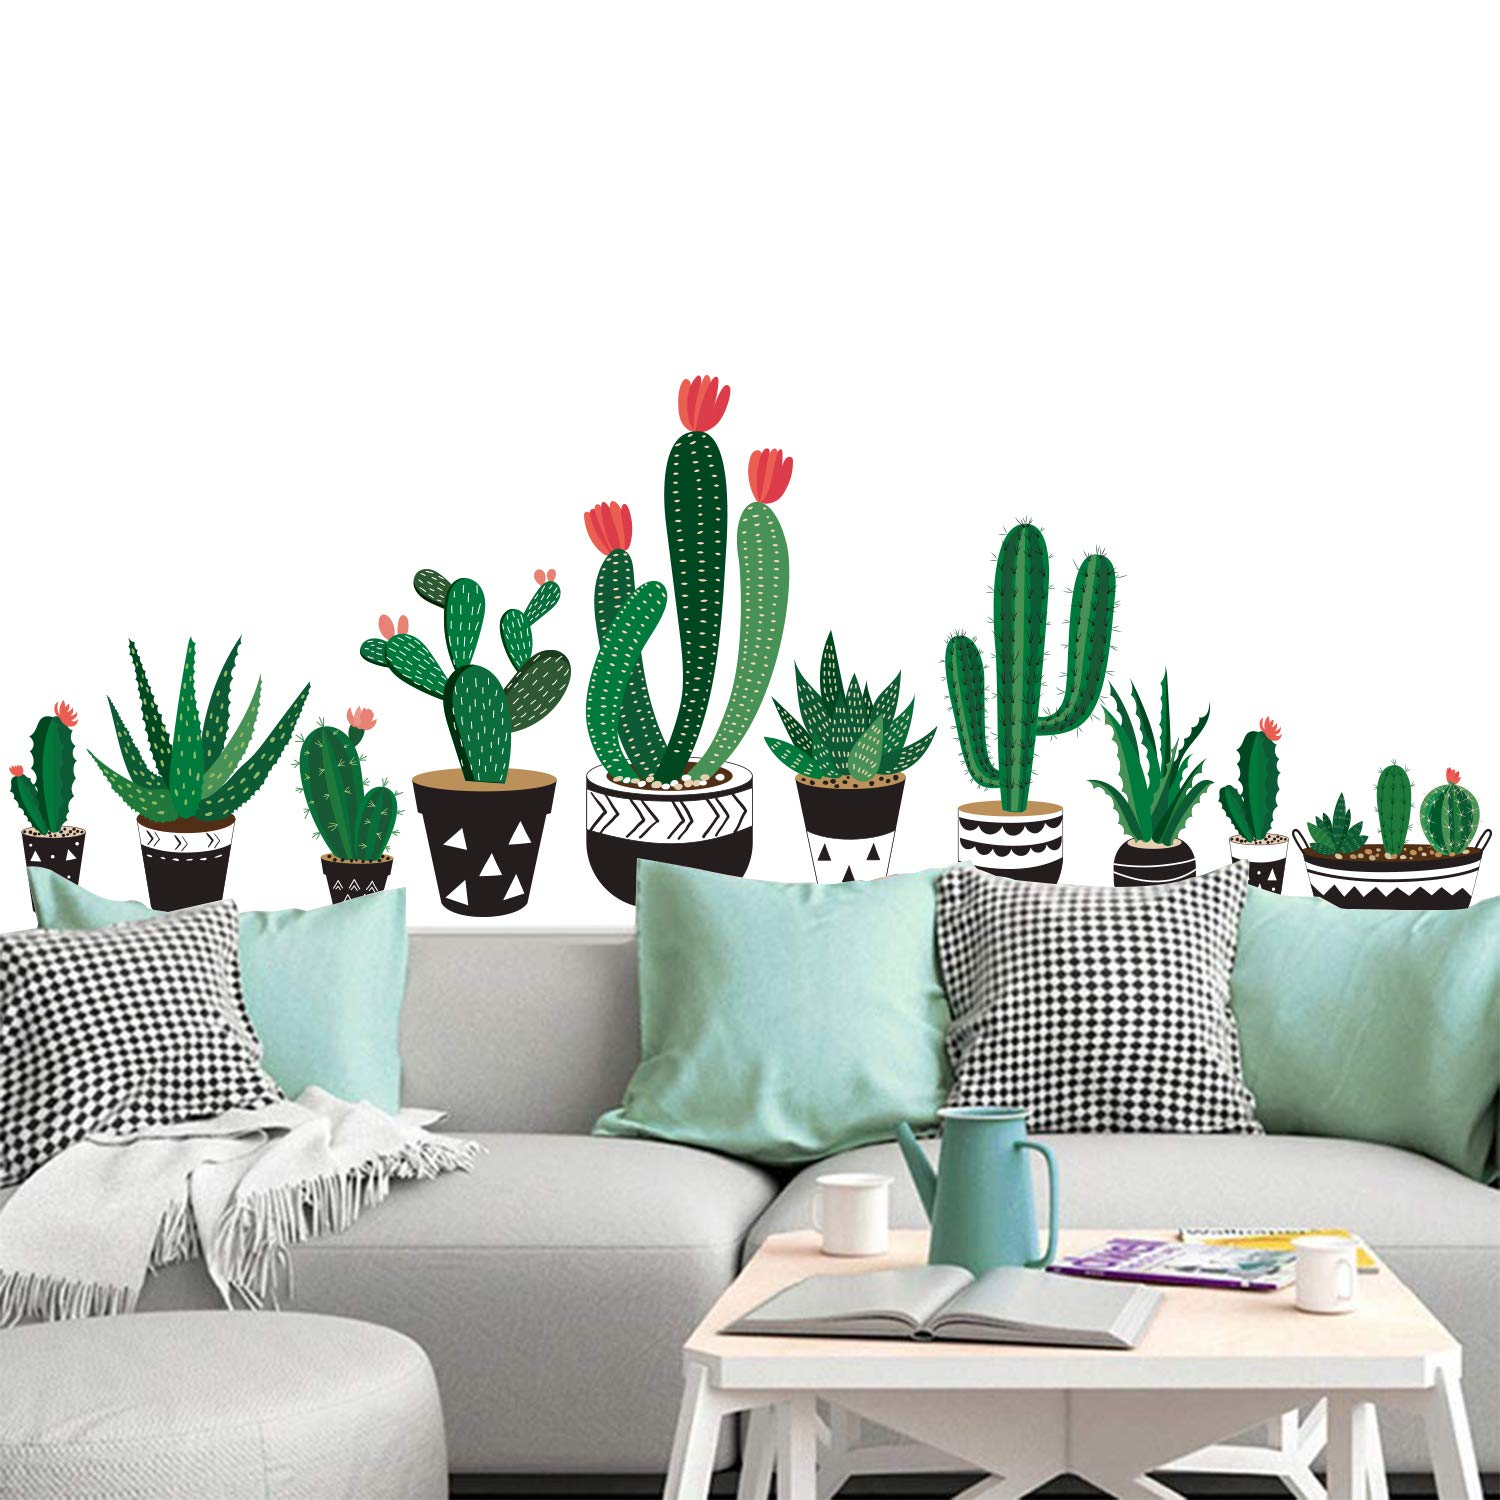 Cactus Wall Sticker DIY Cactus Bonsai Wall Sticker Removable Cartoon Potted  Green Plants Wall Decals for Cupboard Window Home Decor